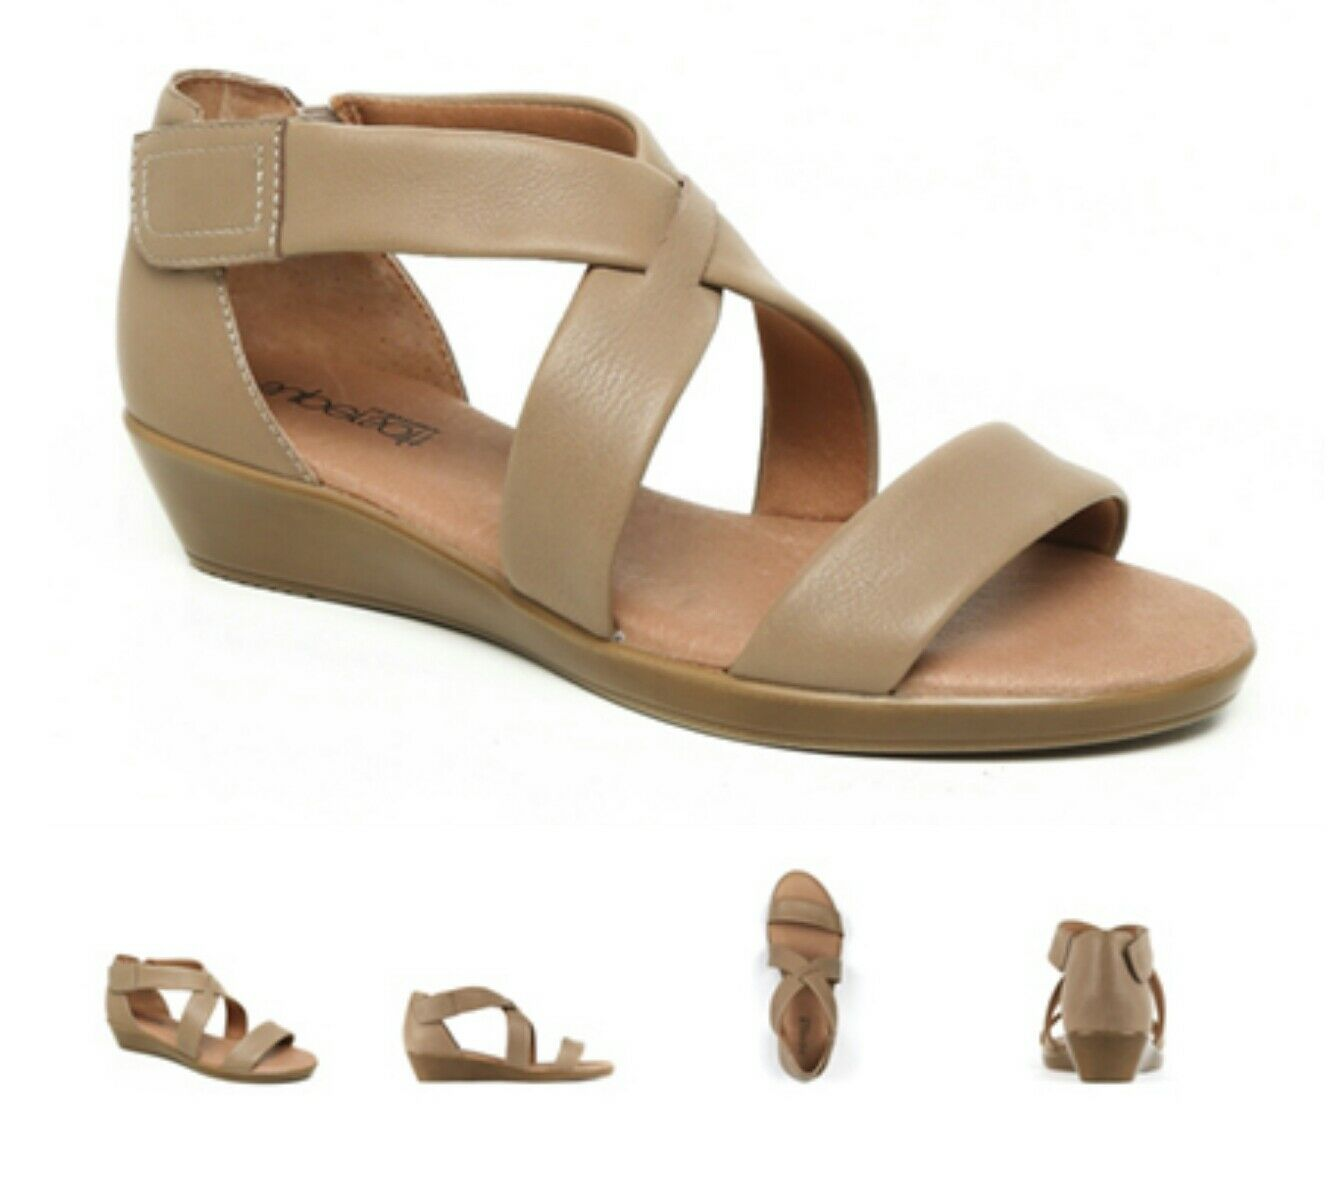 SUPERSOFT BY DIANA FERRARI VANDA  WOMENS SHOES CASUAL SANDALS SZ 7  taupe